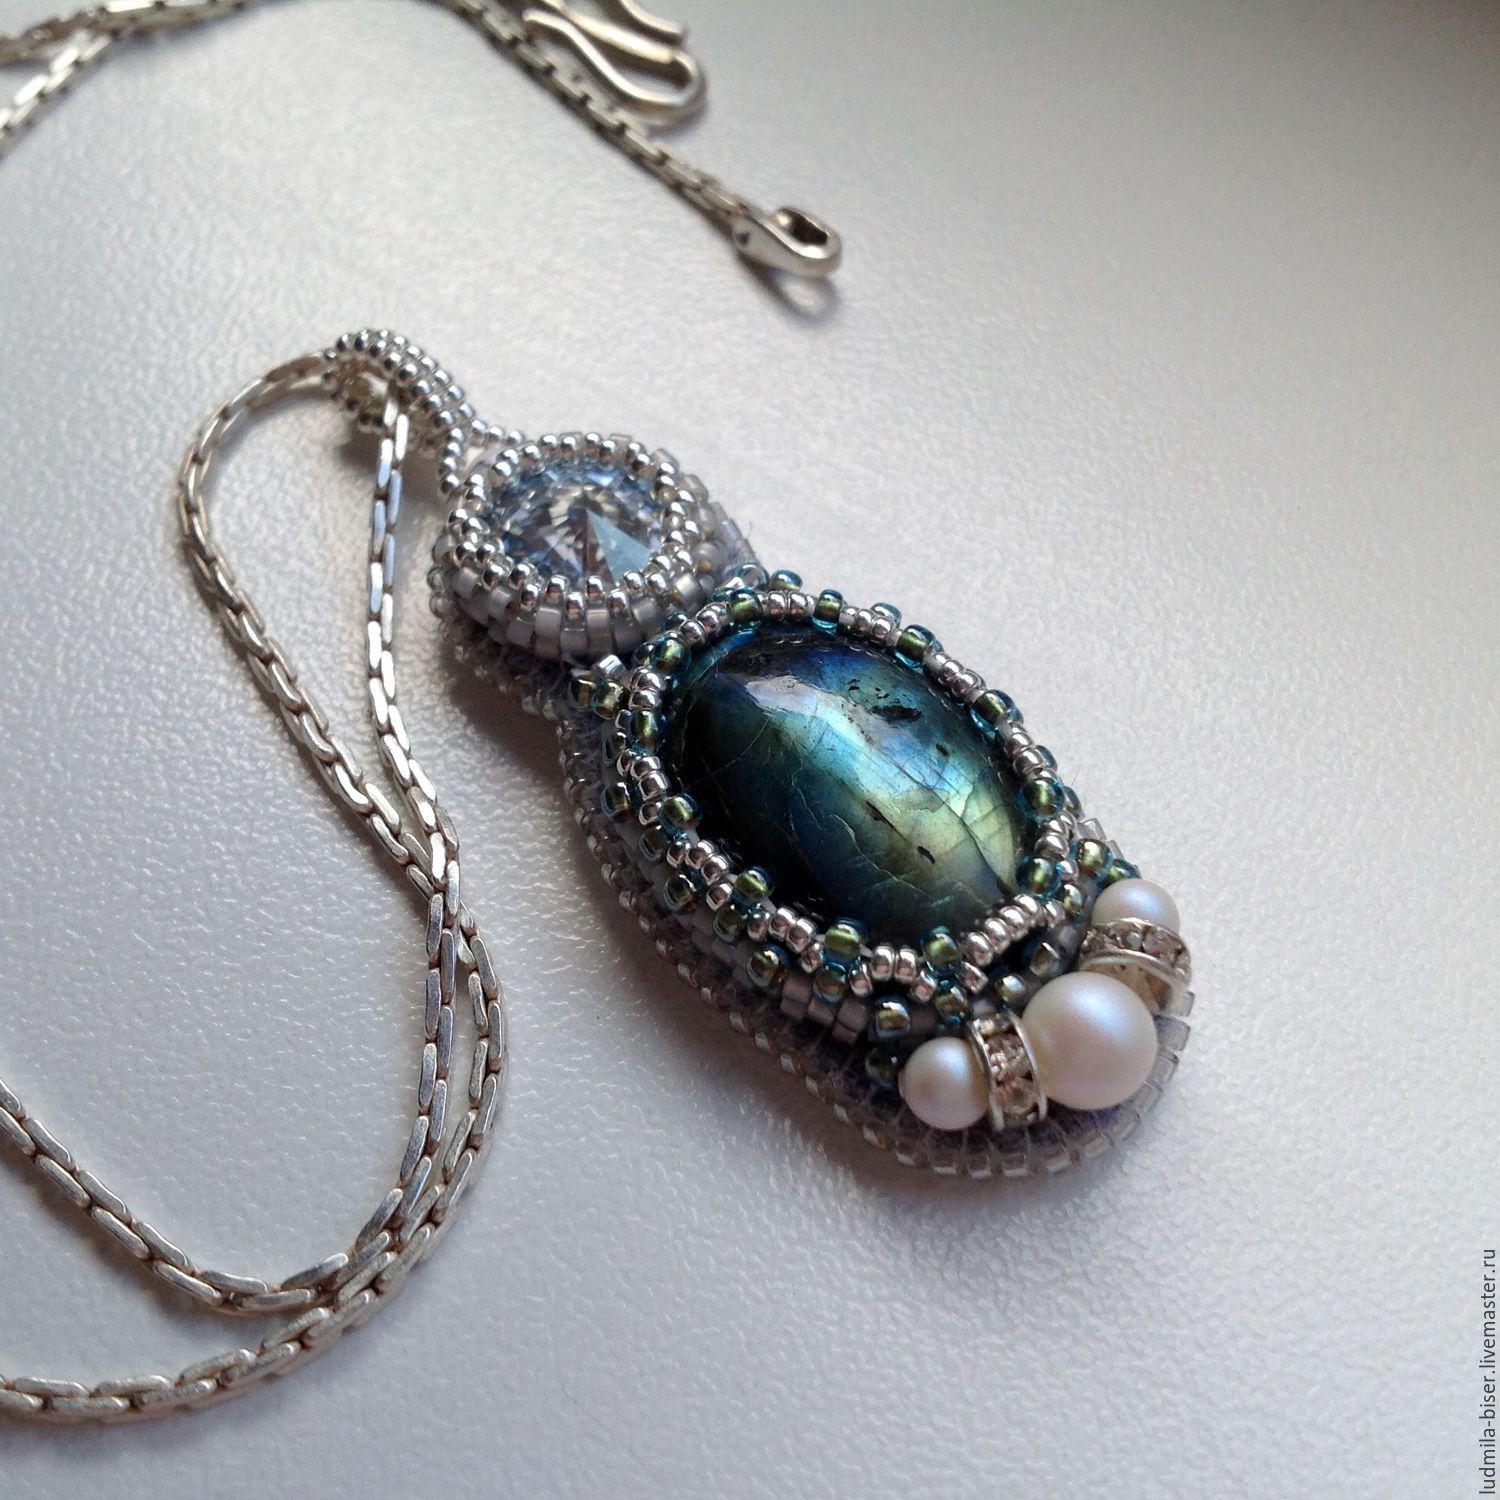 Silver pendant with labradorite 'Obsession', Pendants, Moscow,  Фото №1